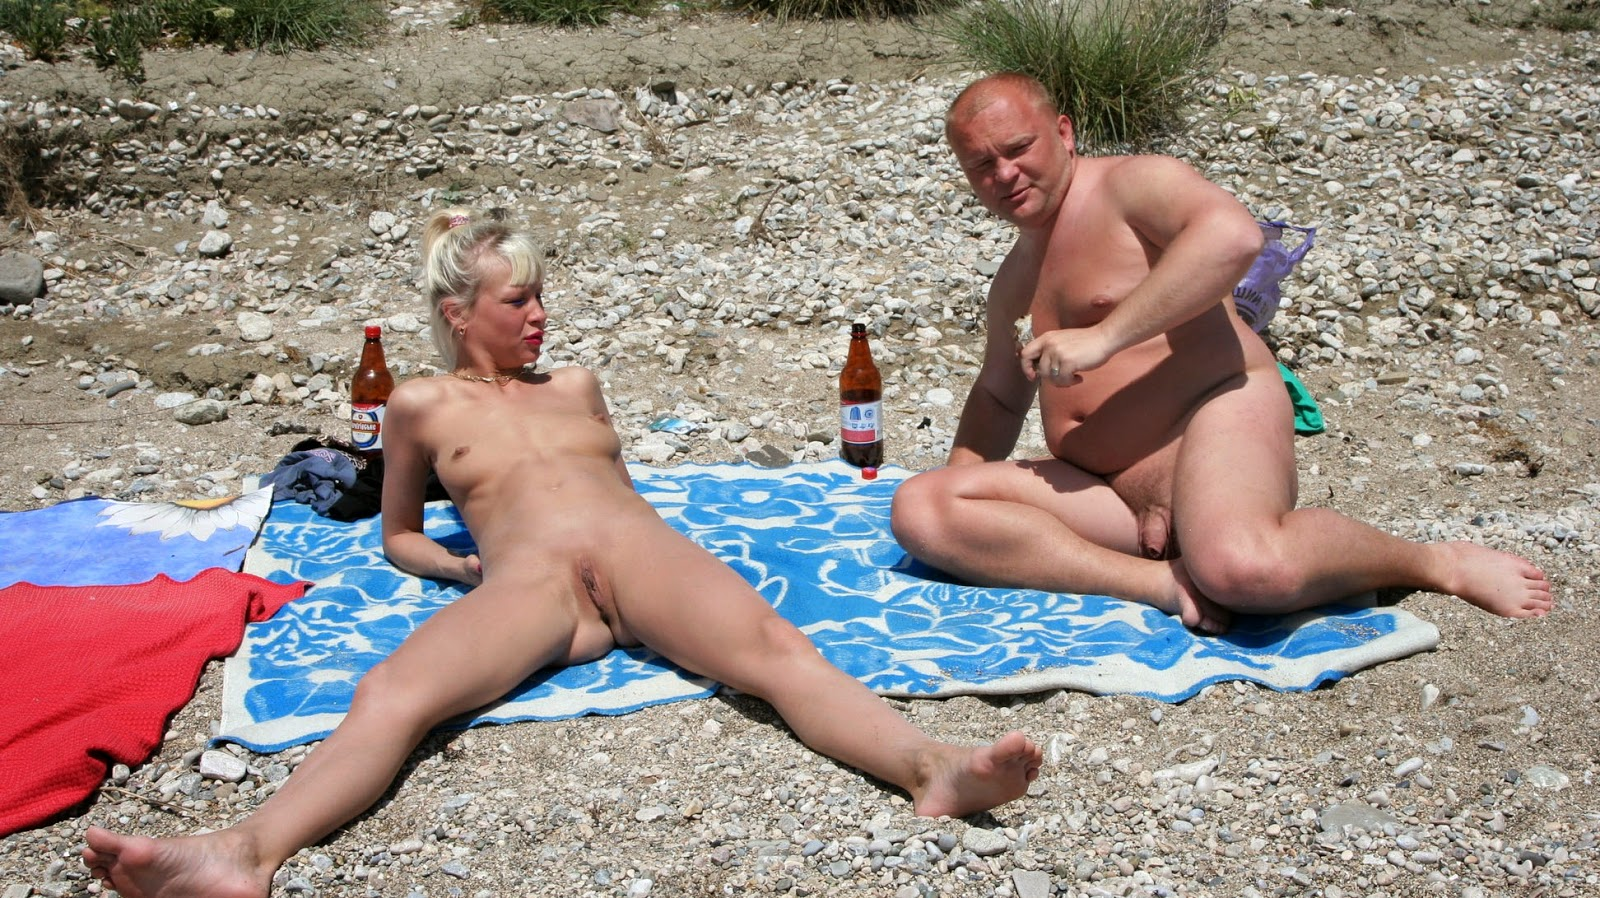 Geiler nudist beach com got